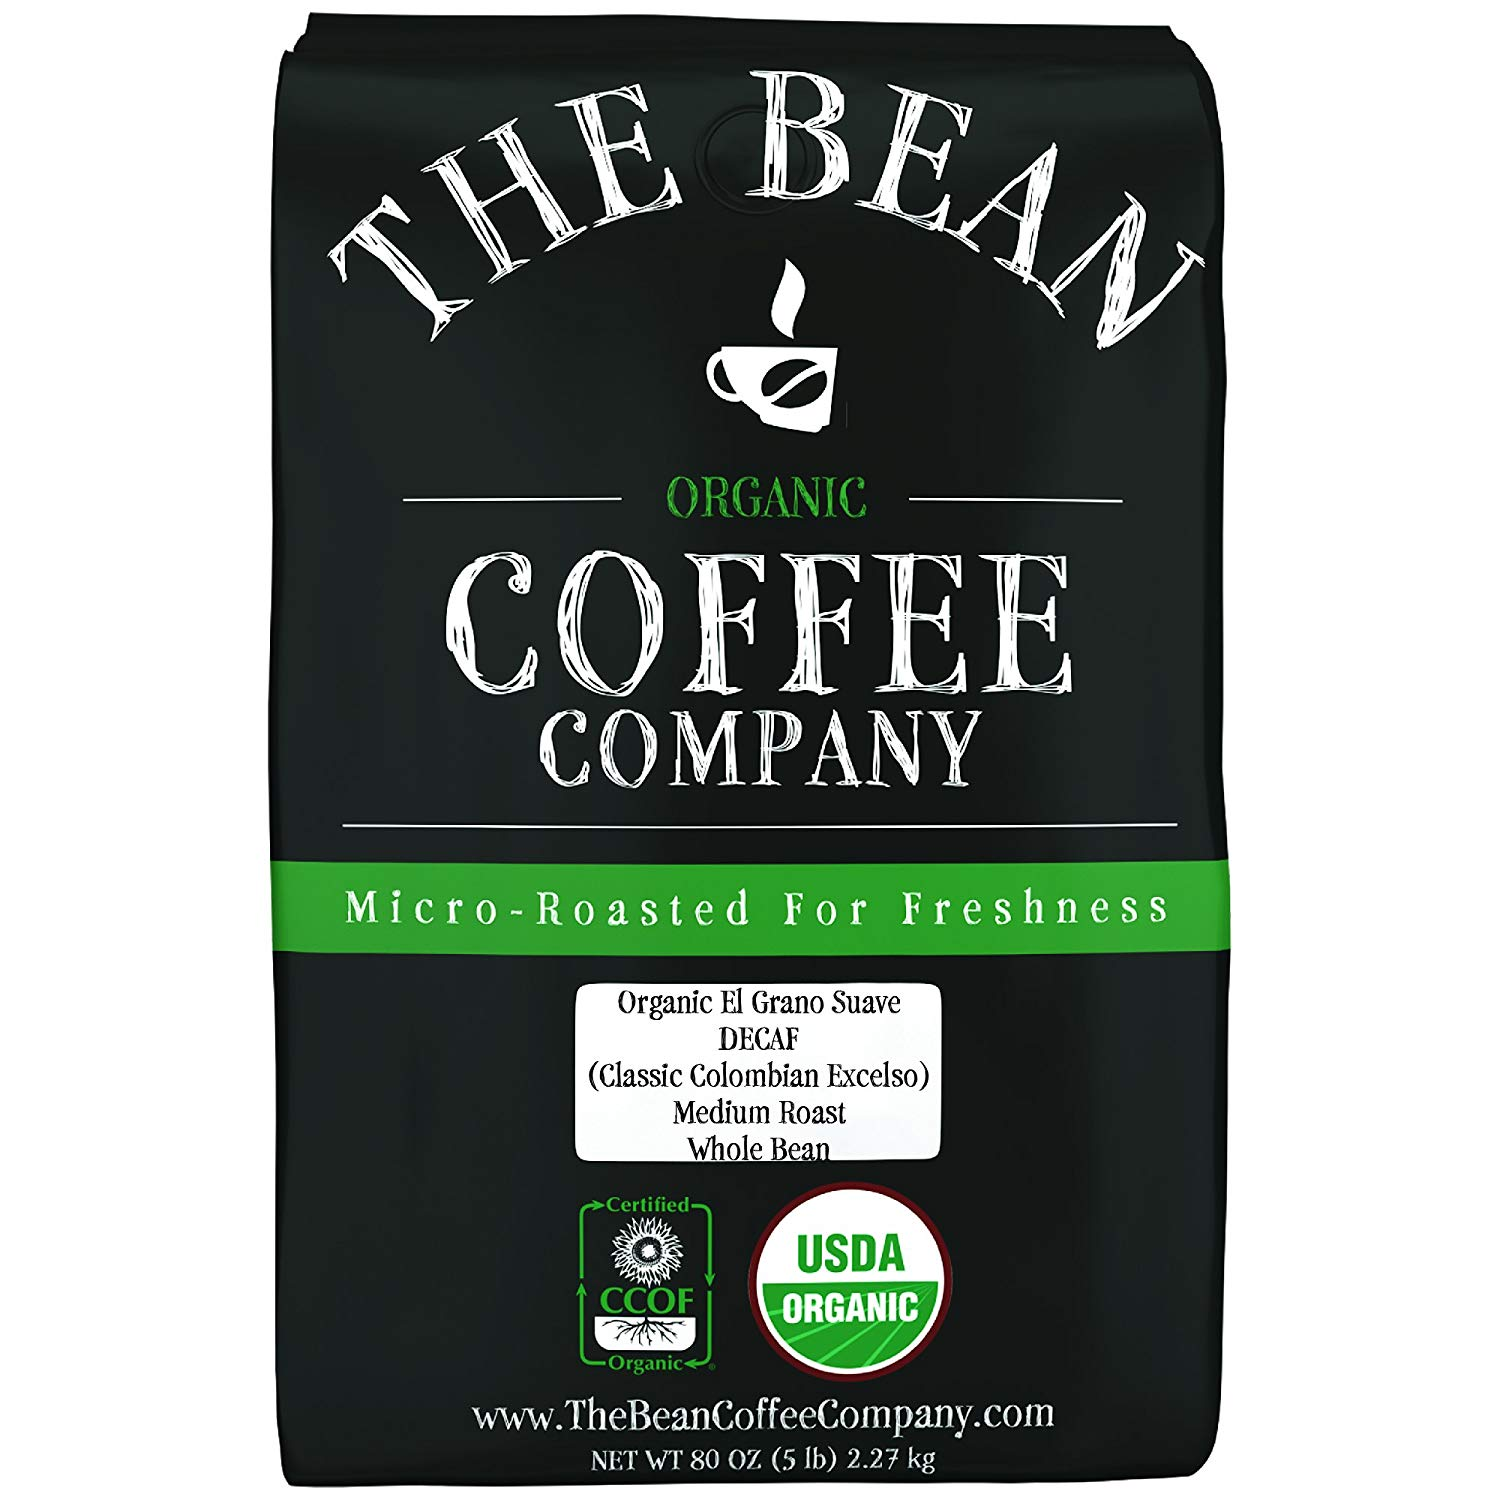 The Bean Coffee Company Organic Decaf Columbian Excelso, Medium Roast, Whole Bean, 5-Pound Bag